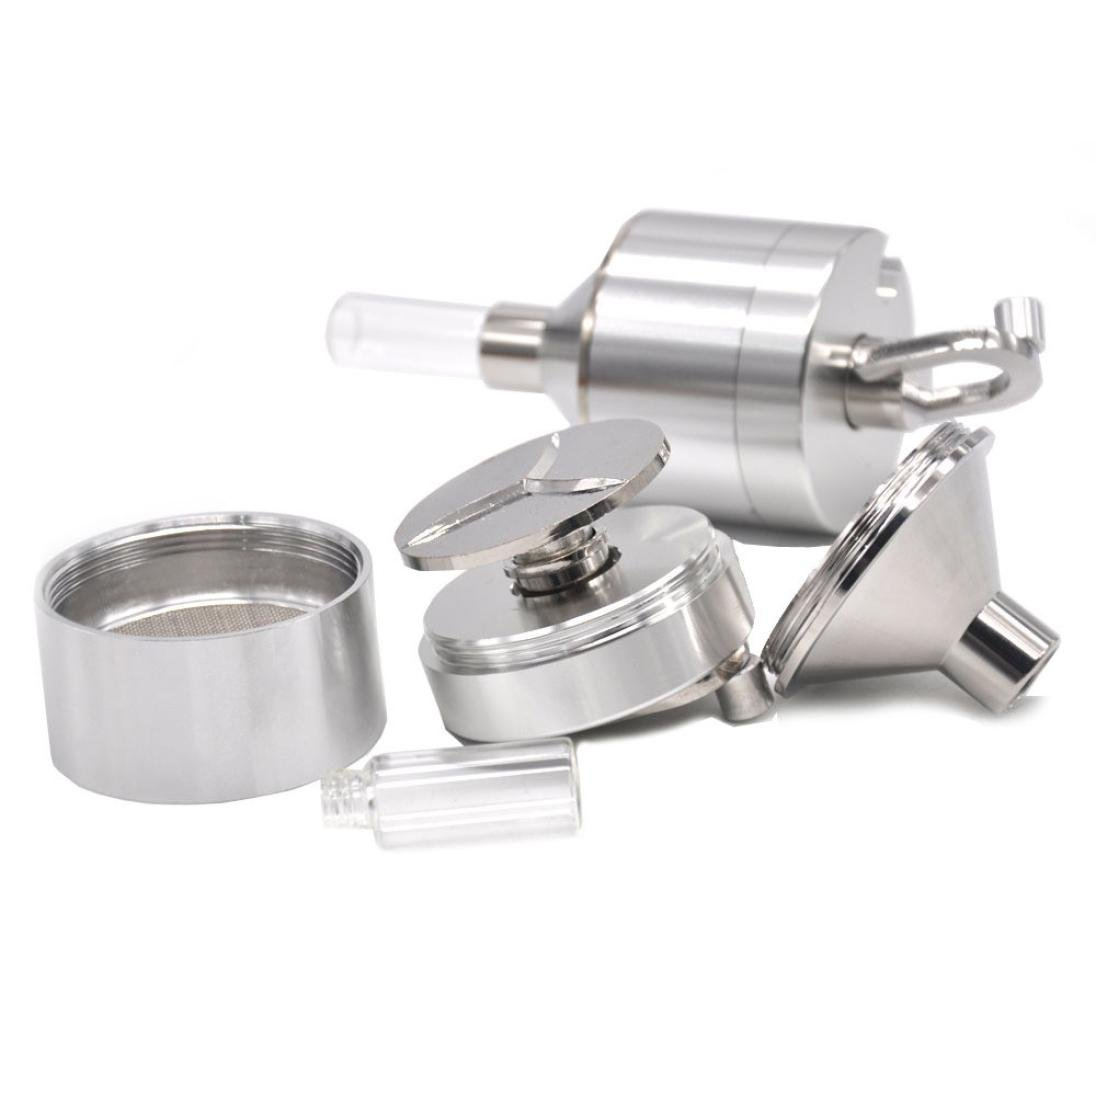 Matel Herb Grinder, Funnel Mill Grinder Metal Aluminium Hand Pollinator Snuff Titanium Press Crusher Dinglong